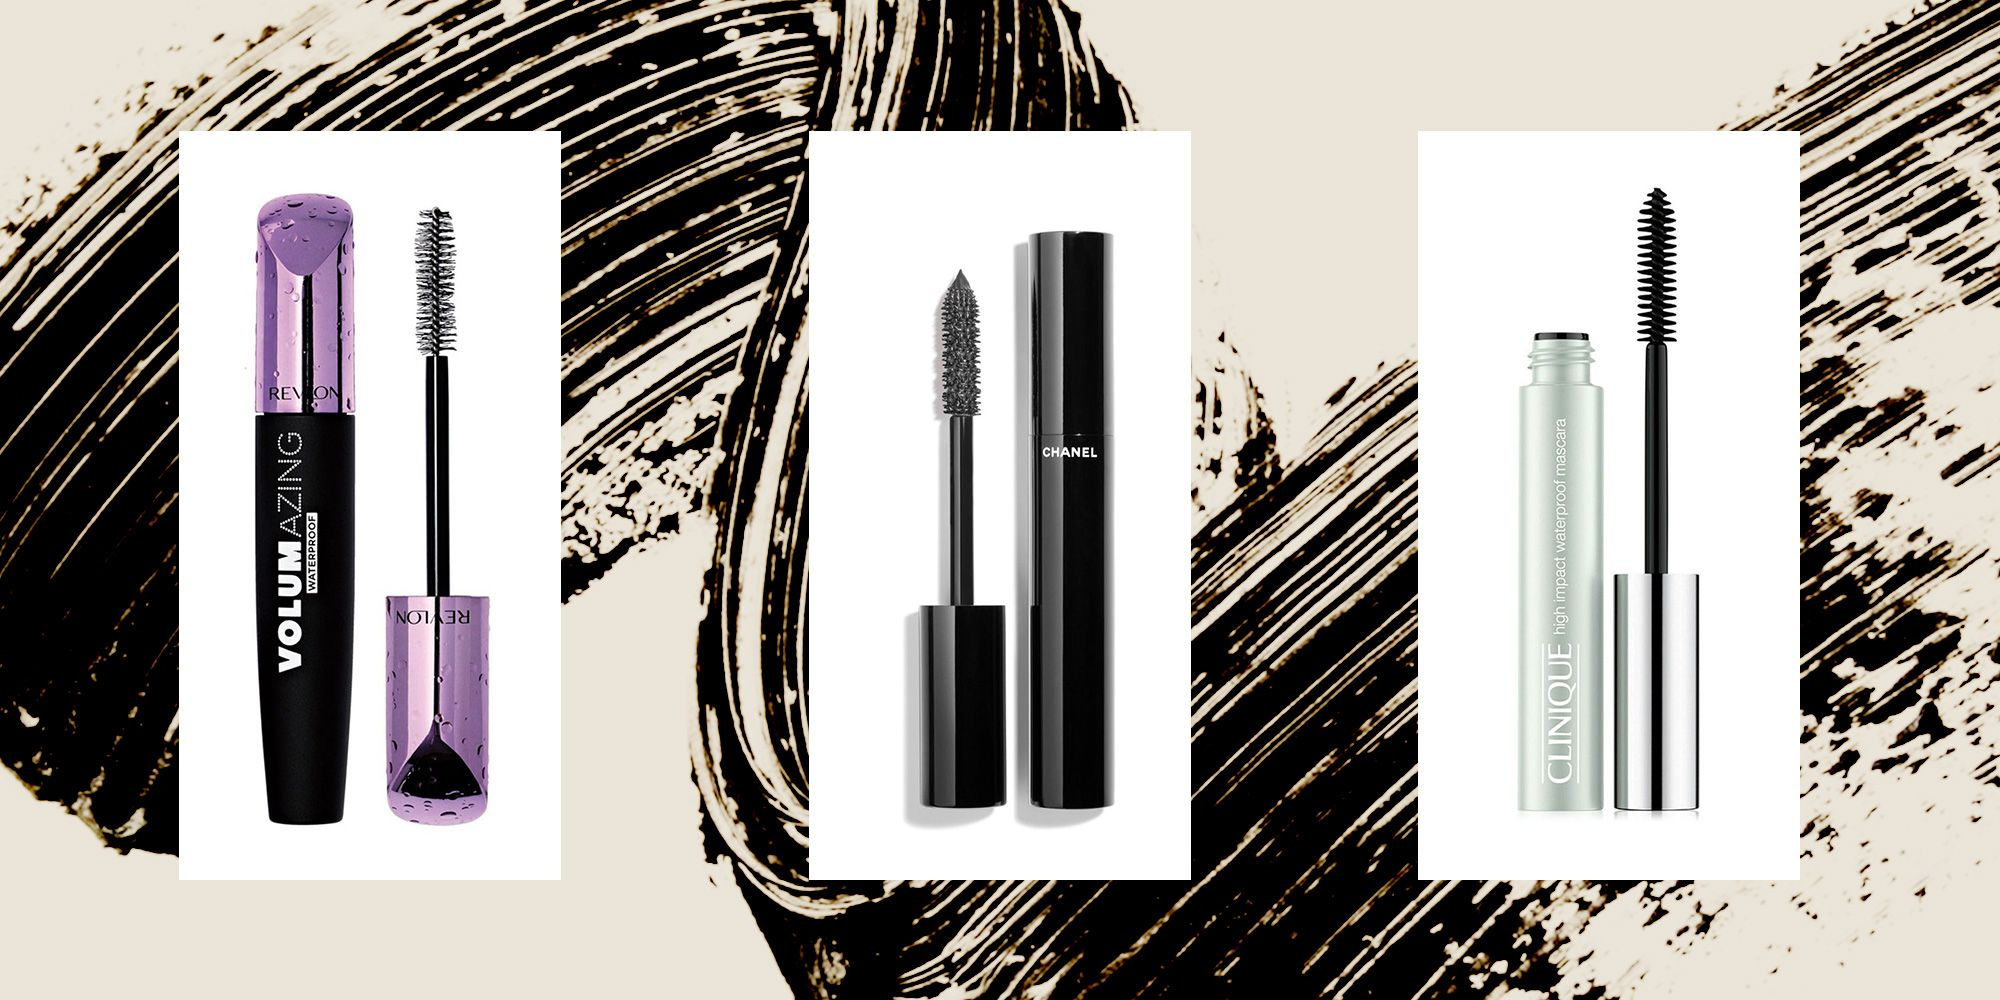 fb7652d58ed 12 Best Waterproof Mascaras - Long-Lasting Waterproof Mascara Formulas